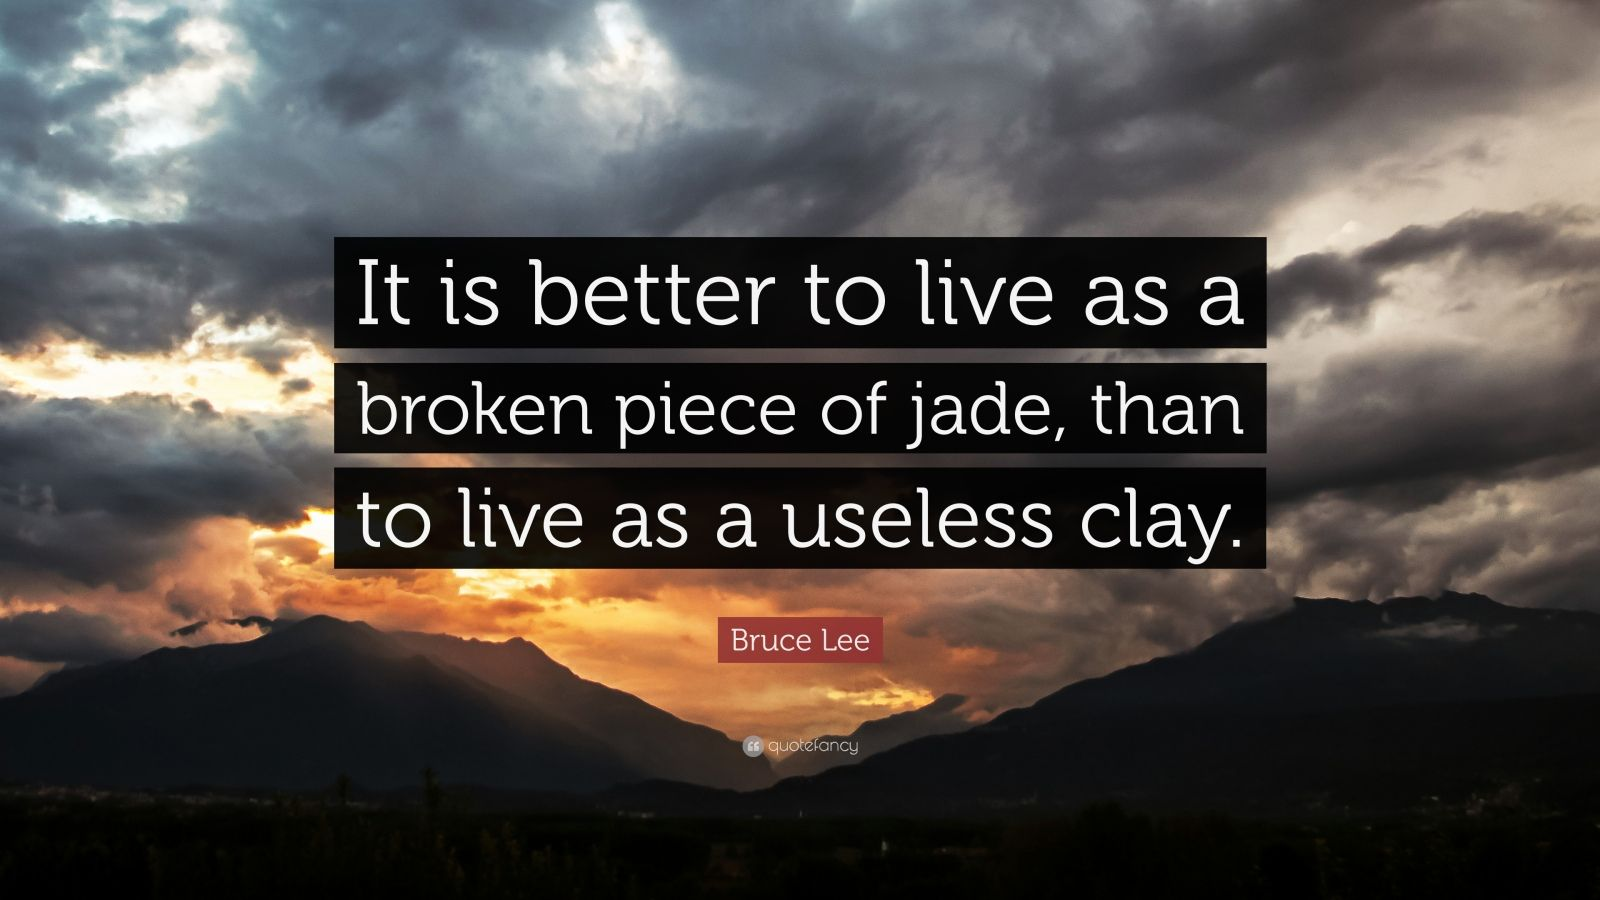 """Bruce Lee Quote: """"It is better to live as a broken piece of jade, than to live as a useless clay."""""""